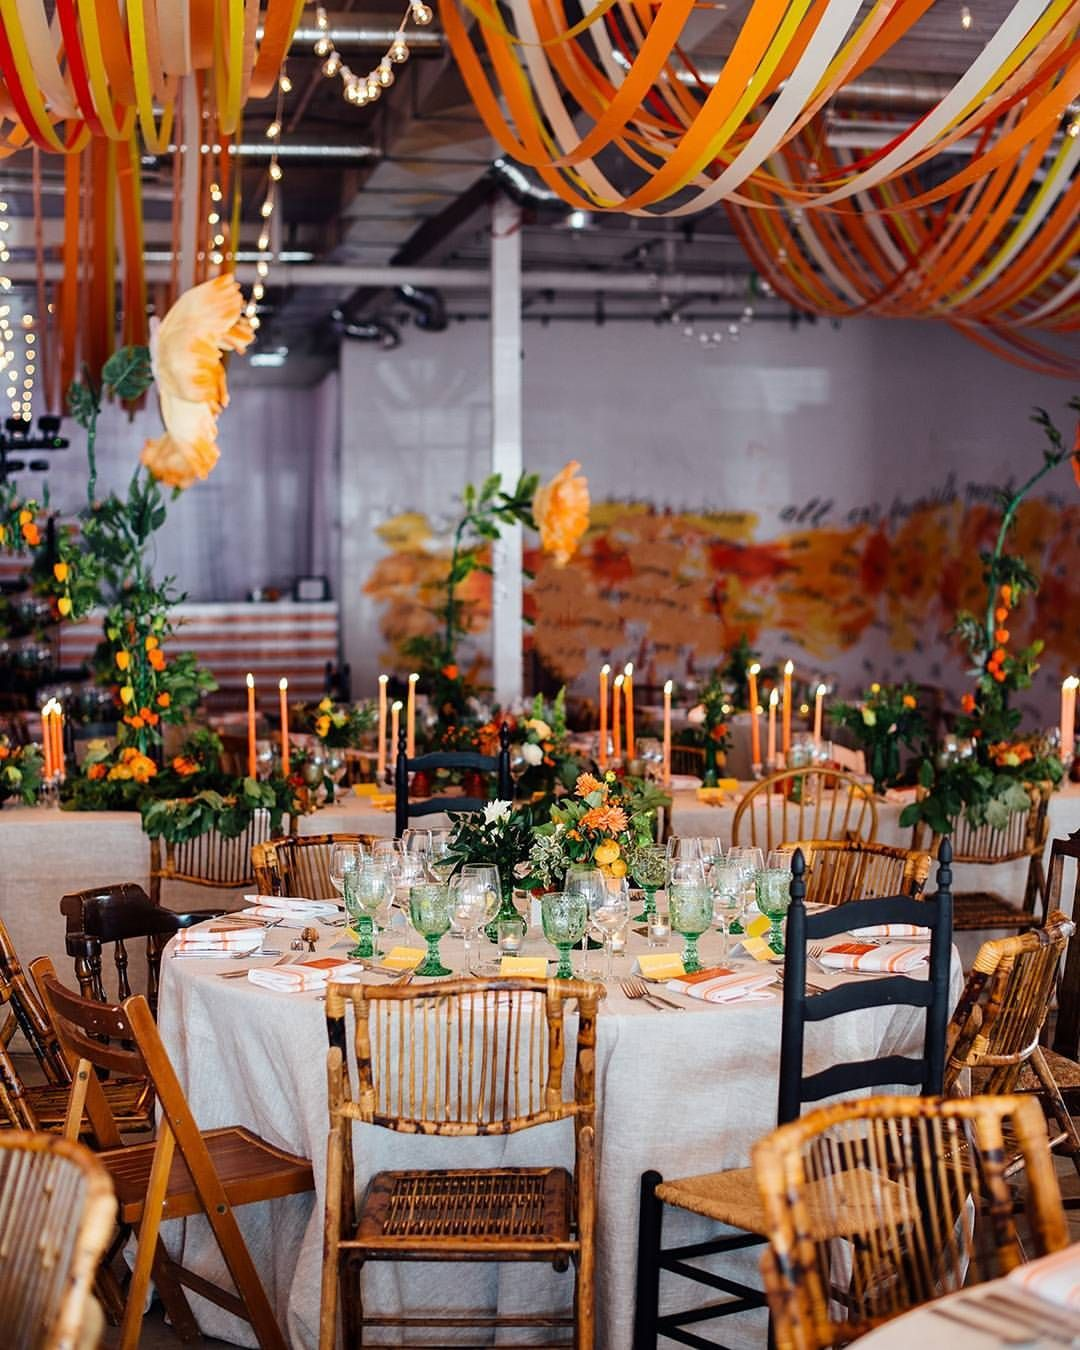 Decoration images for wedding  See this Instagram photo by greenweddingshoes u  likes